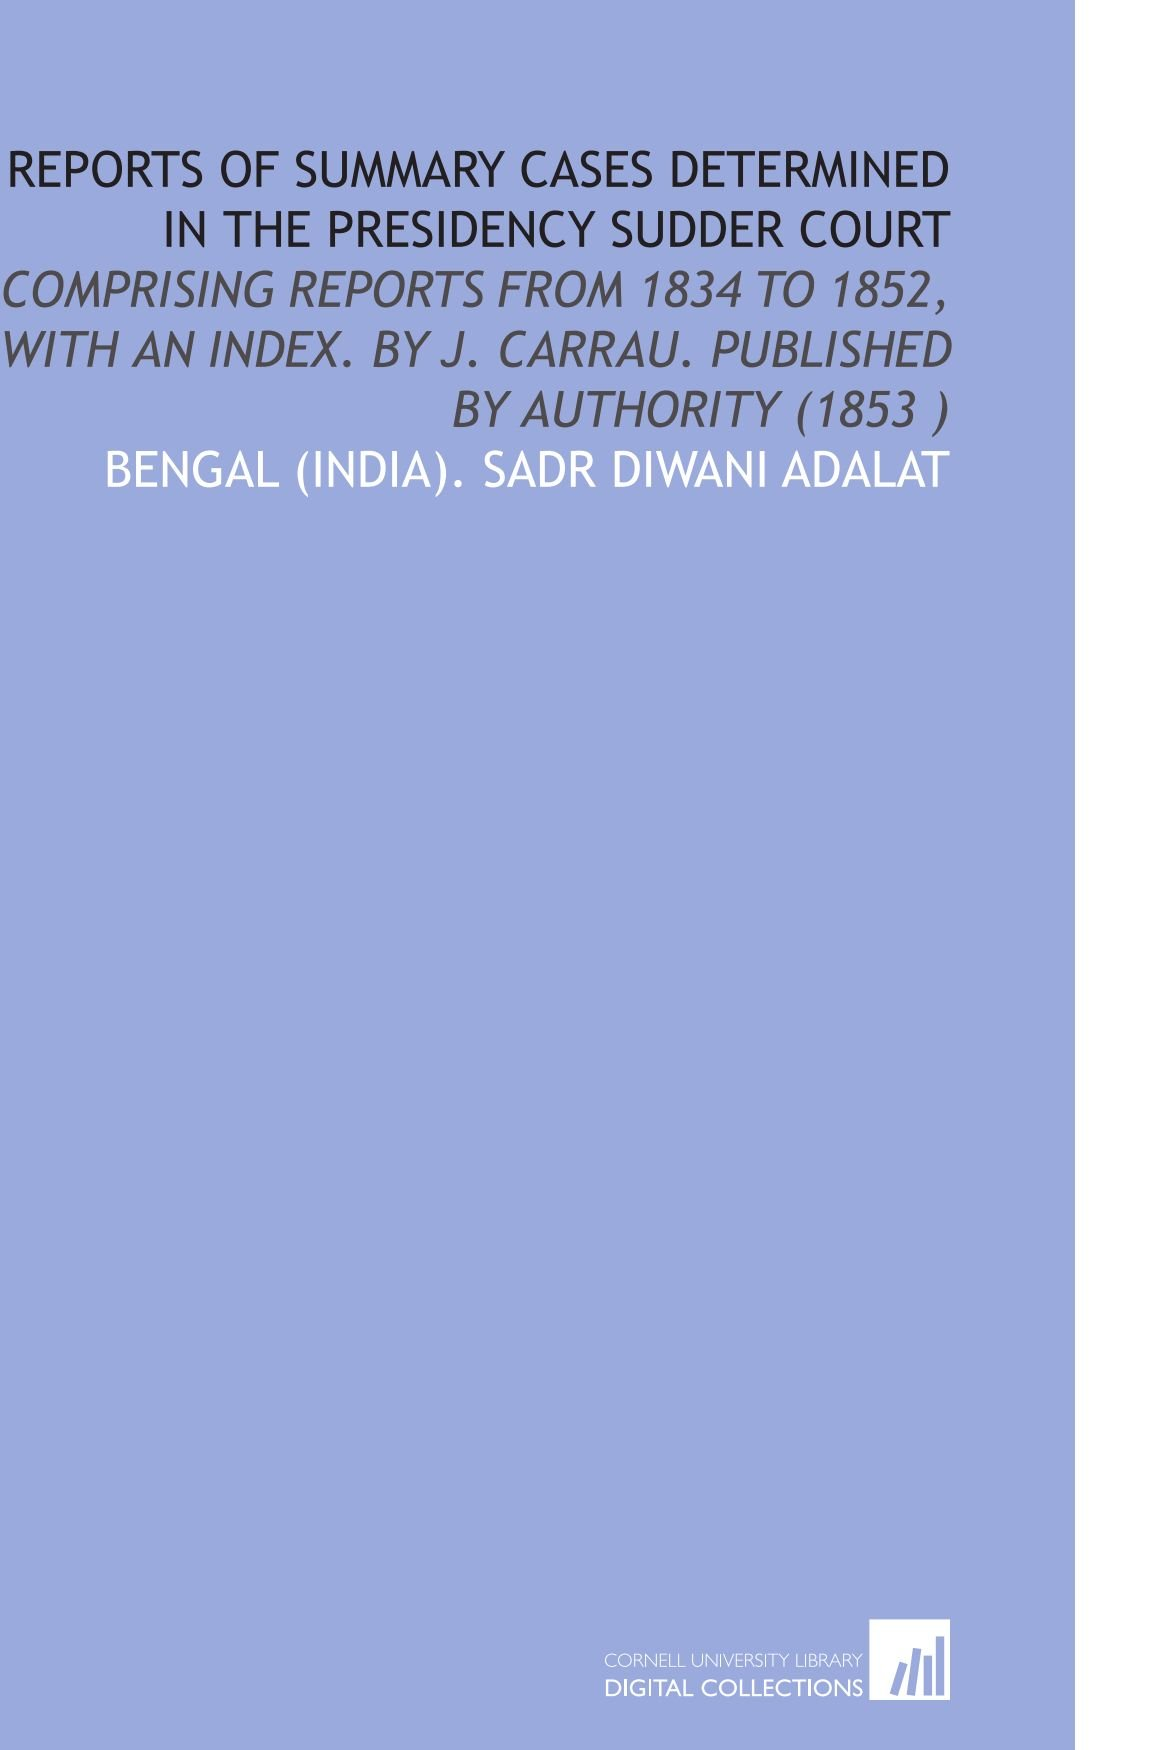 Reports of Summary Cases Determined in the Presidency Sudder Court: Comprising Reports From 1834 to 1852, With an Index. By J. Carrau. Published by Authority (1853 ) PDF